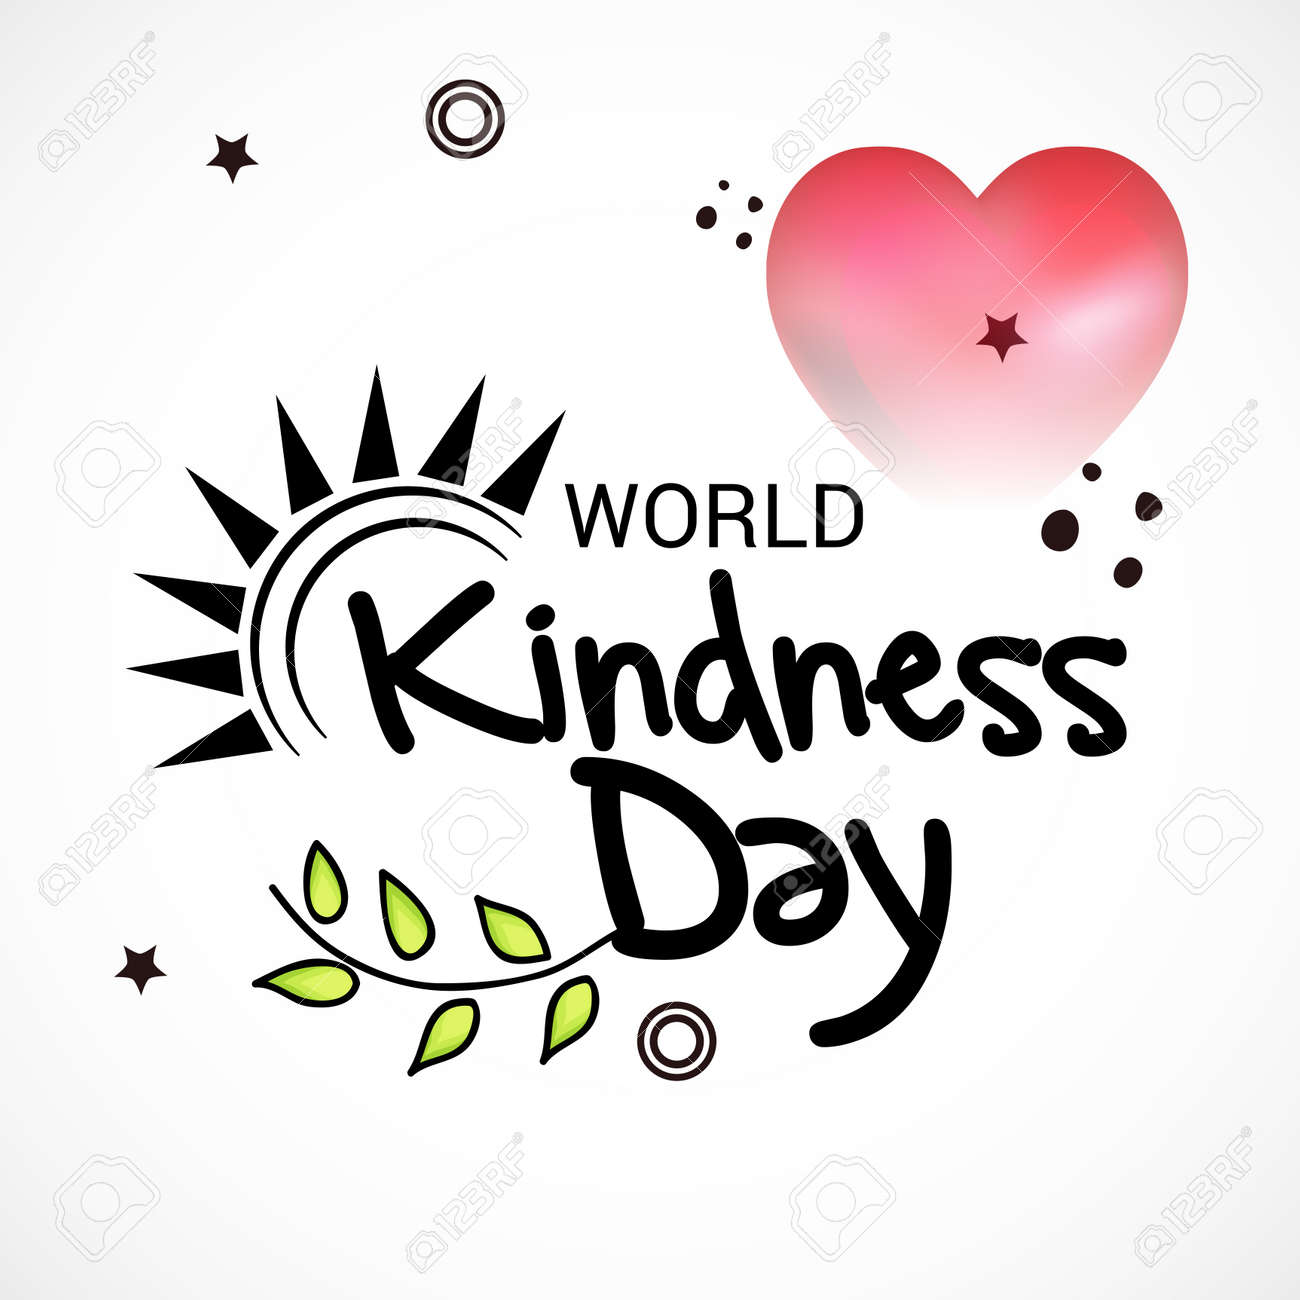 World Kindness Day Royalty Free Cliparts Vectors And Stock Illustration Image 89915551